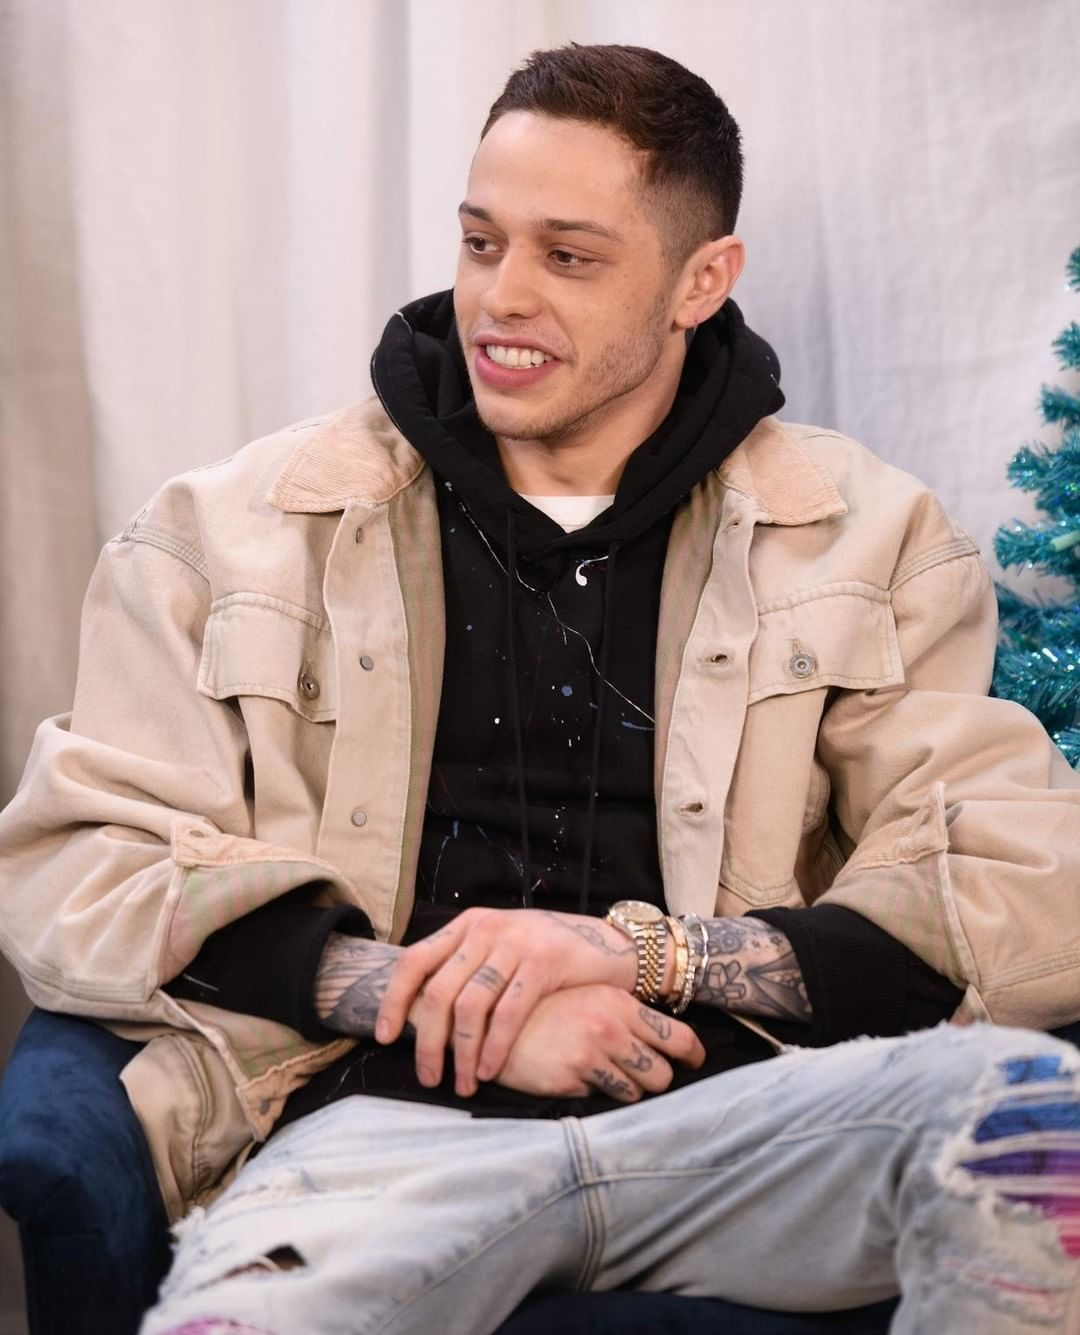 Pete Davidson Kicks F Ckface Heckler Out Of A Gig After A Mac